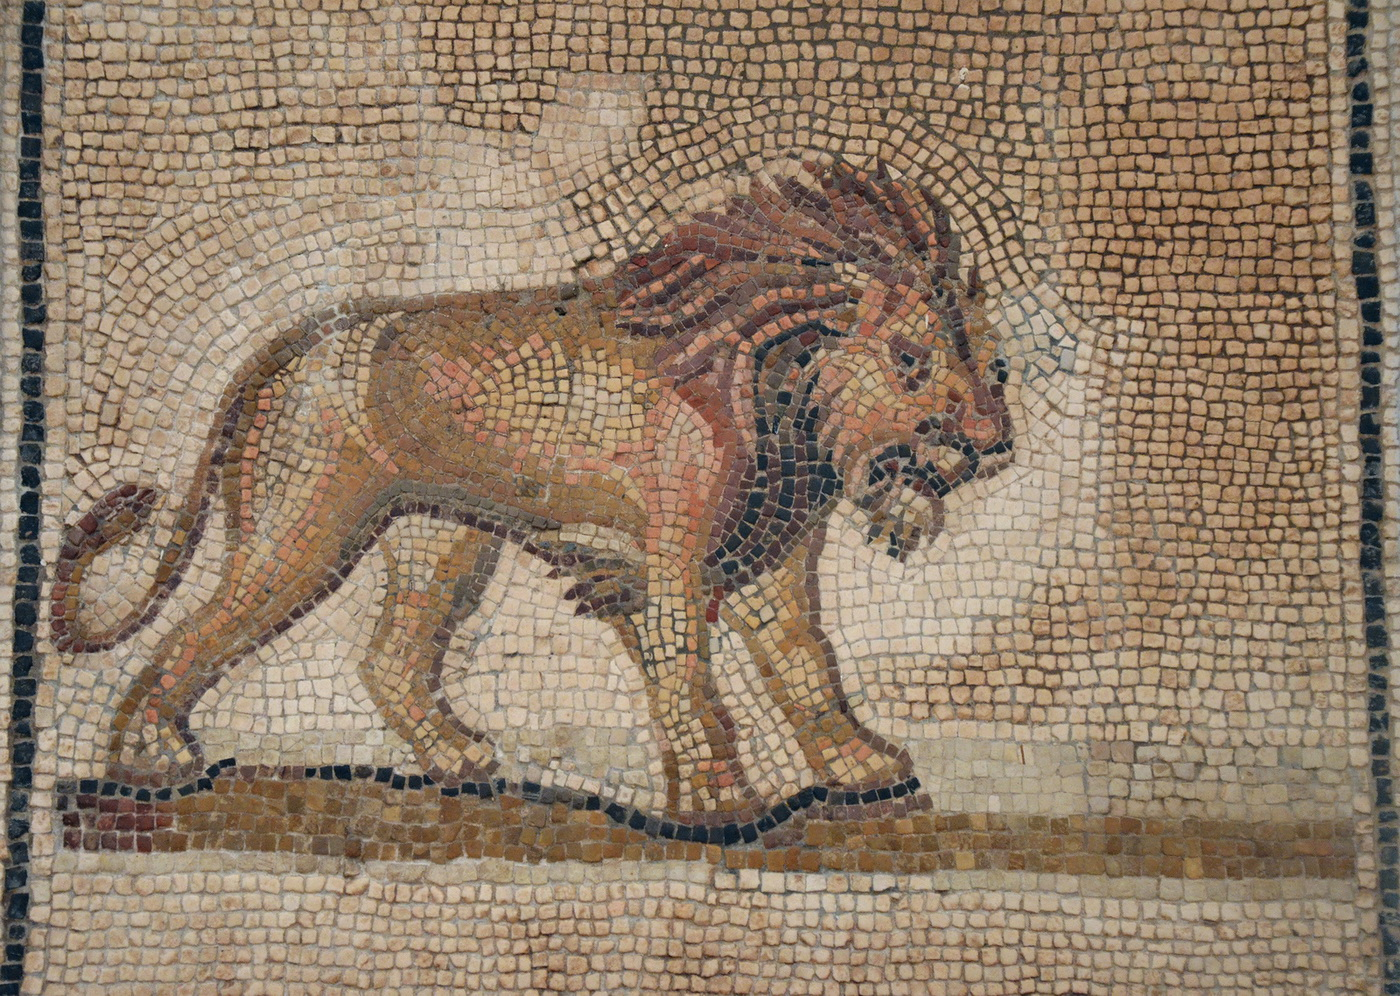 Mosaic from Colonia Aelia Augusta Itálica depicting a Lion 176-275 AD-1400